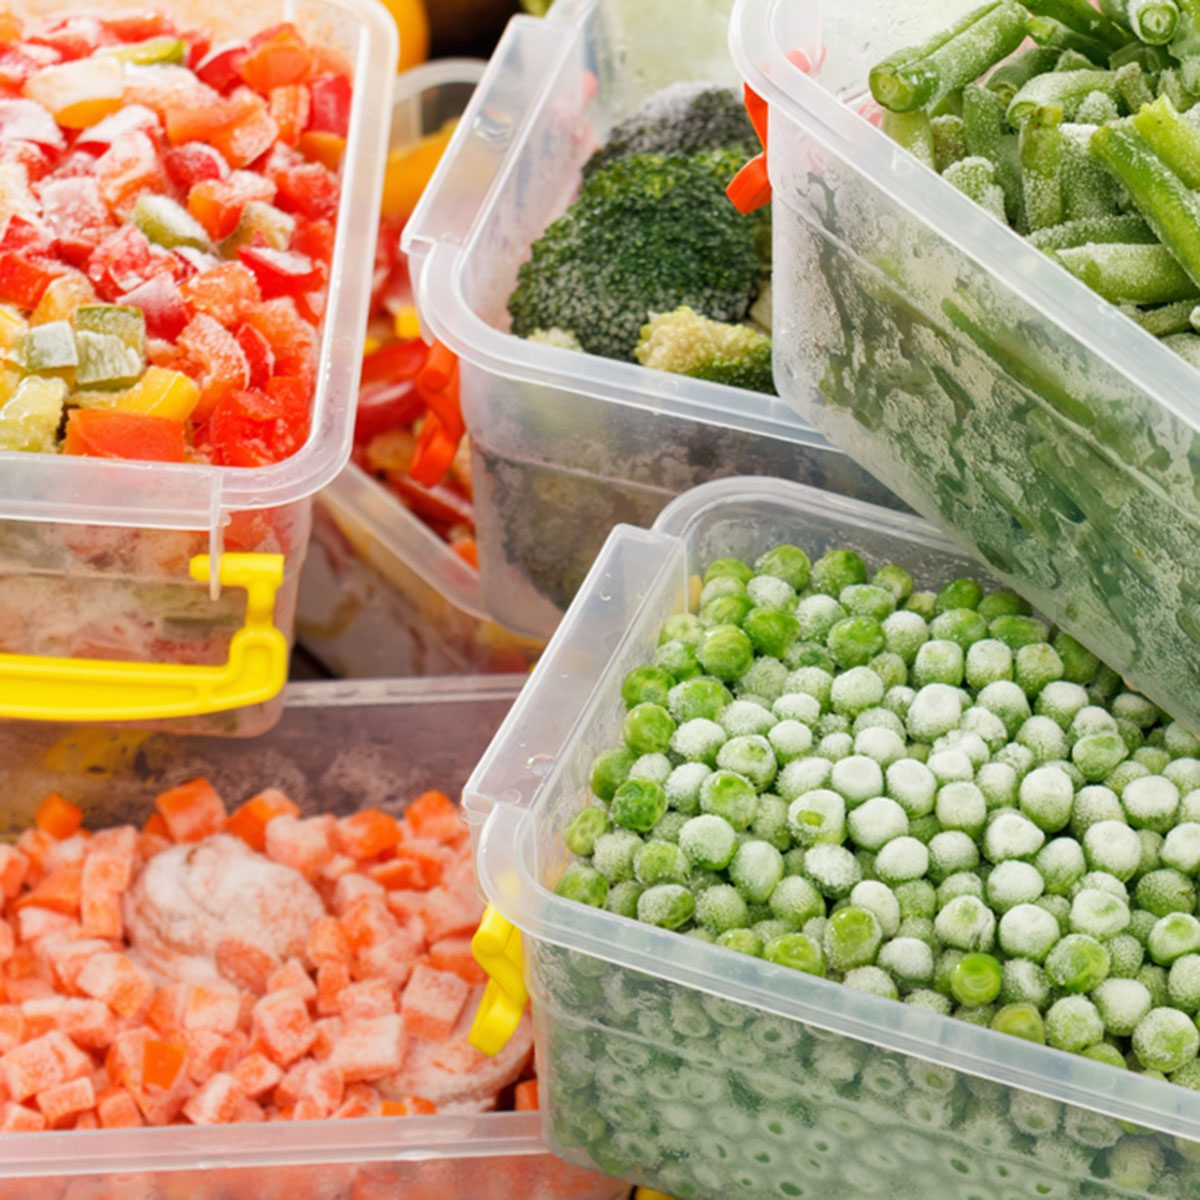 Frozen foods recipes vegetables in plastic containers. Healthy freezer food and meals.; Shutterstock ID 523974097; Job (TFH, TOH, RD, BNB, CWM, CM): Taste of Home